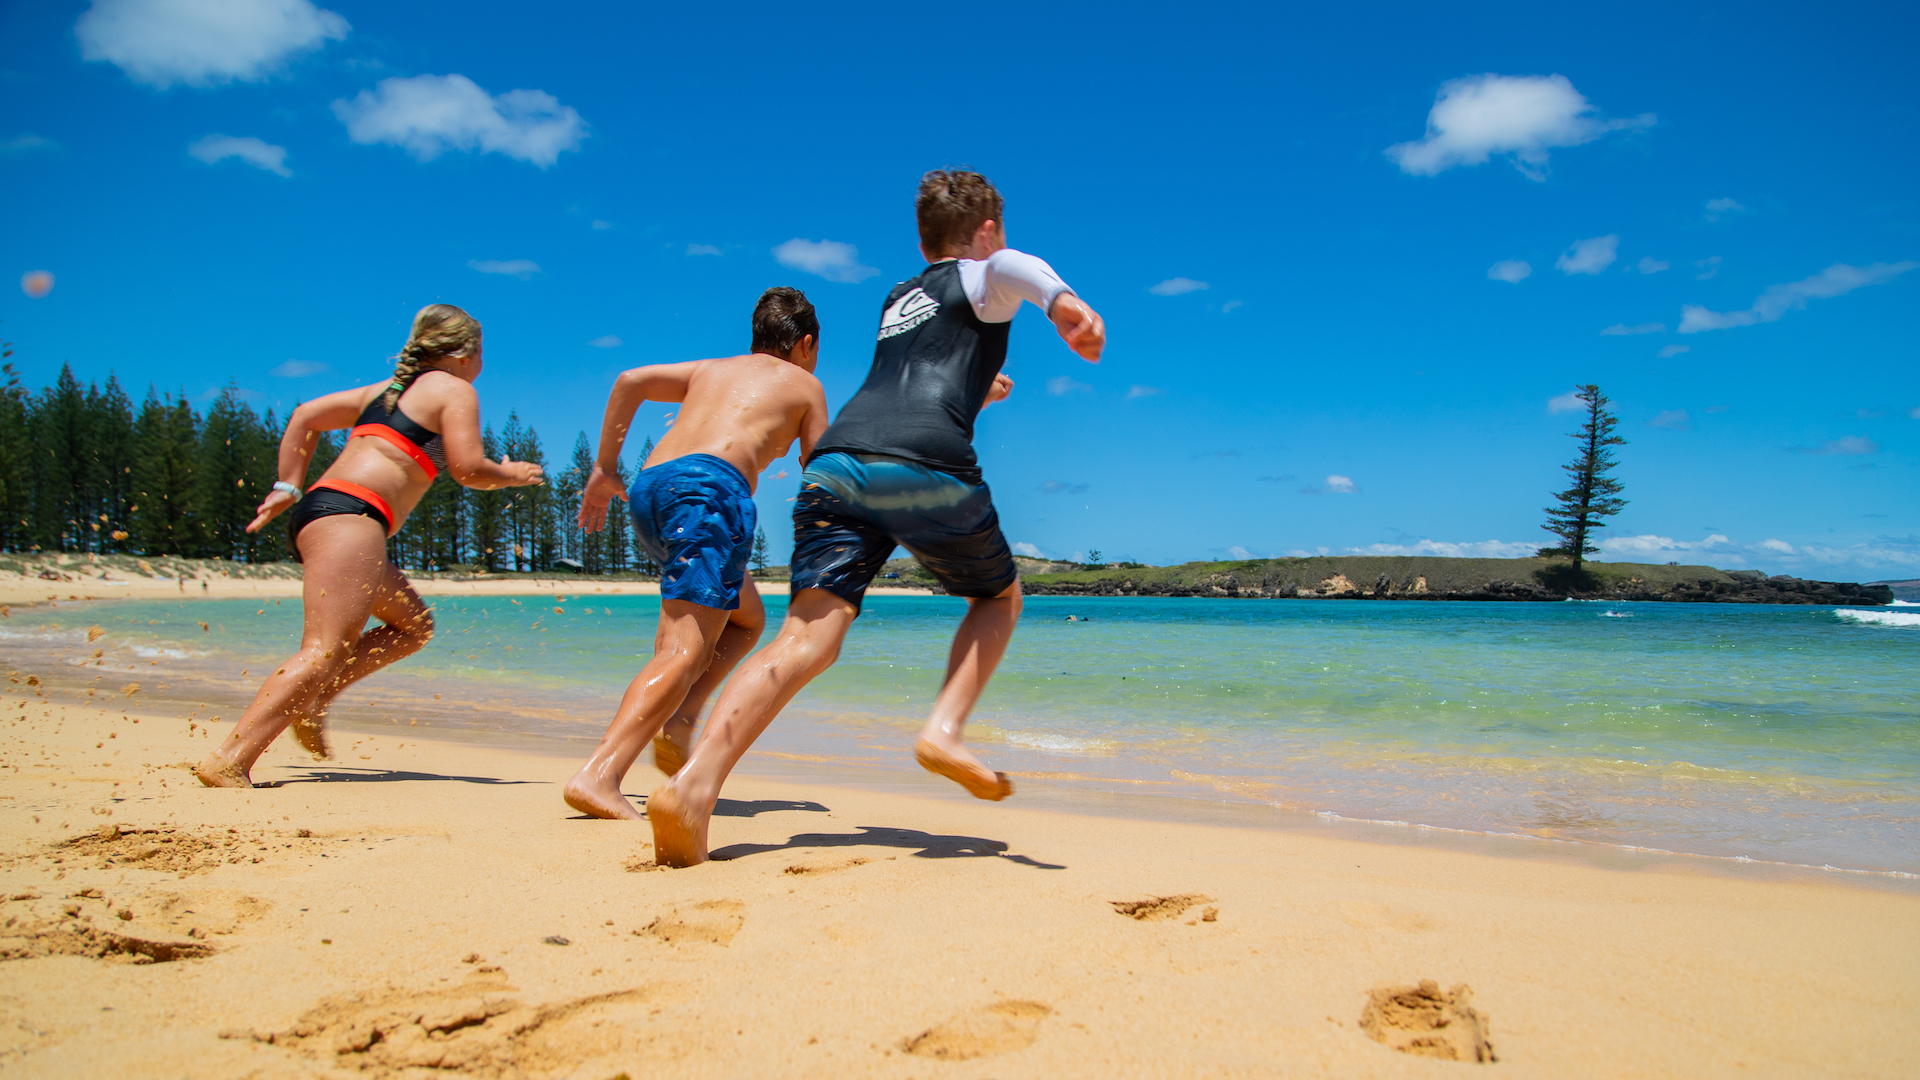 Three children sprint towards calm, clear ocean in a sandy bay. Norfolk pine forest in background, deep blue sky overhead.